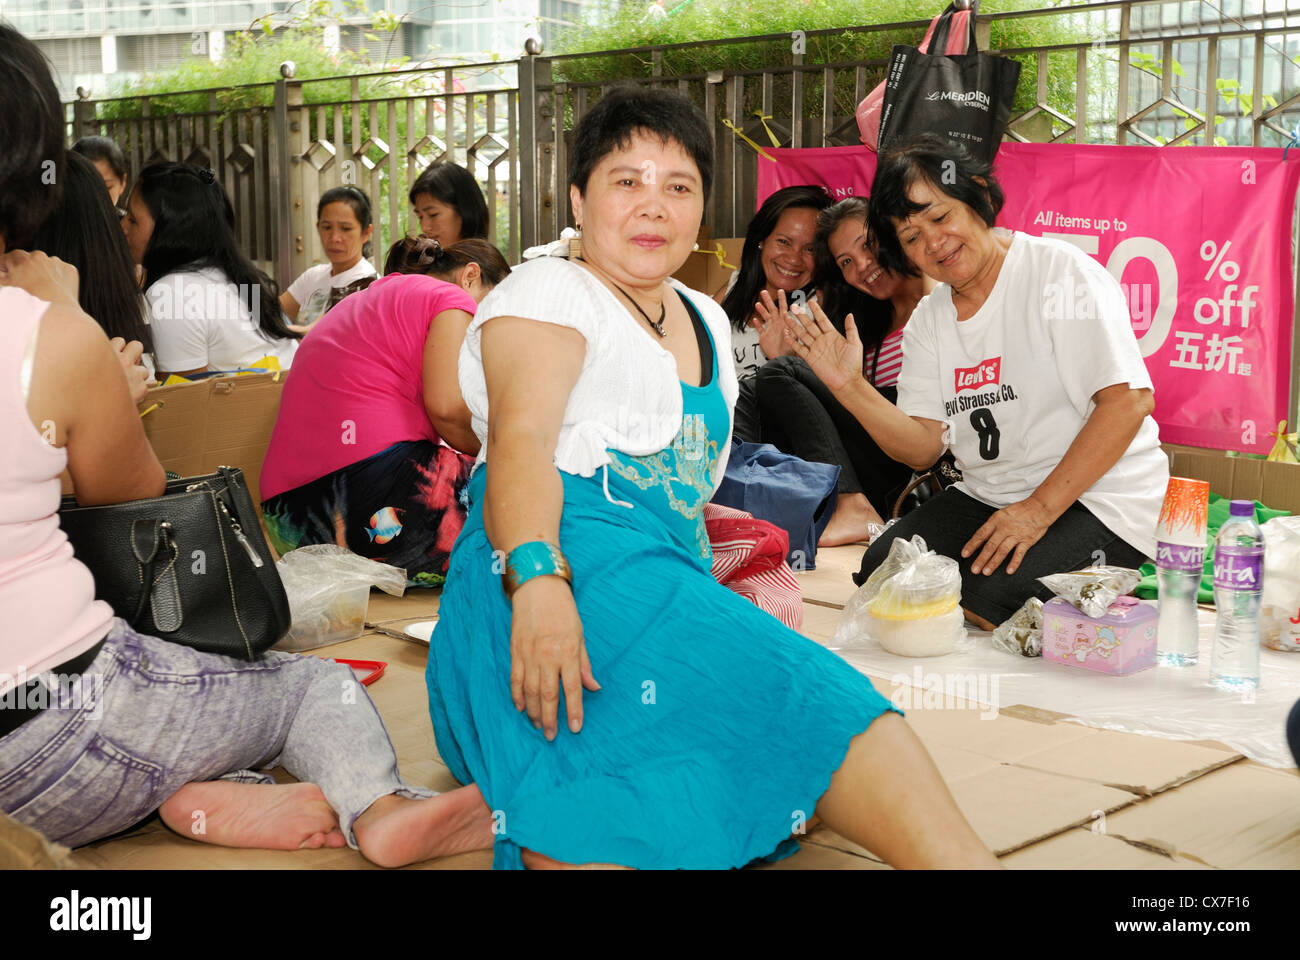 Filipino Nannies congregate on the streets of Hong Kong on Sundays. - Stock Image